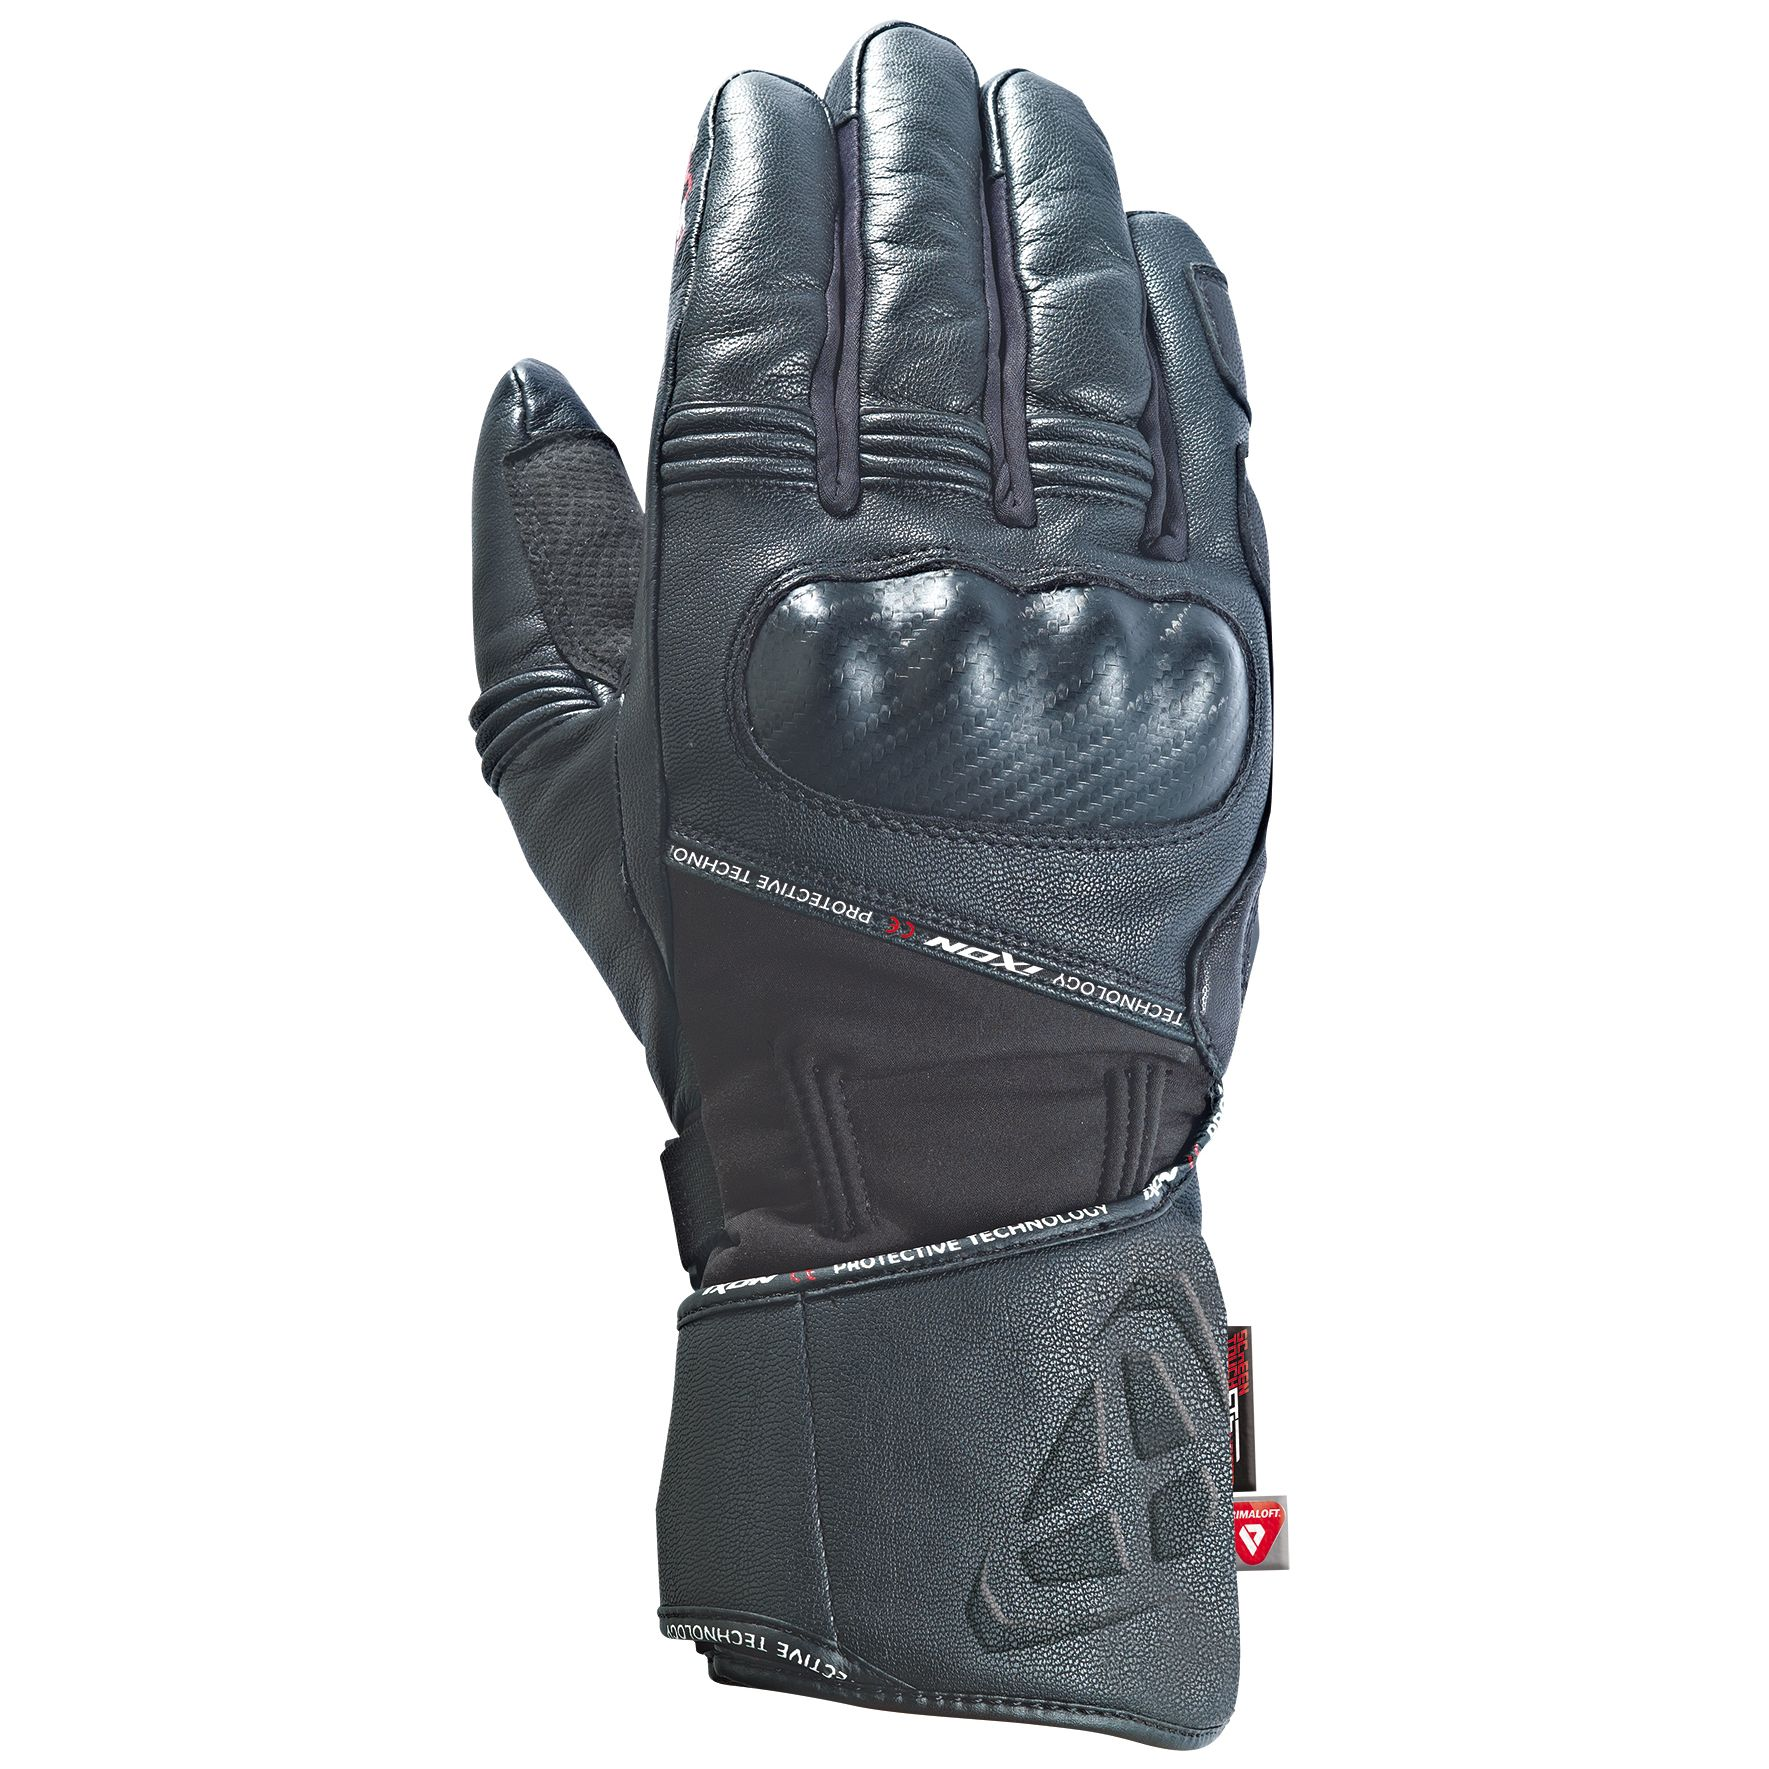 High Top Textil Guantes, Color Gris, Talla 38